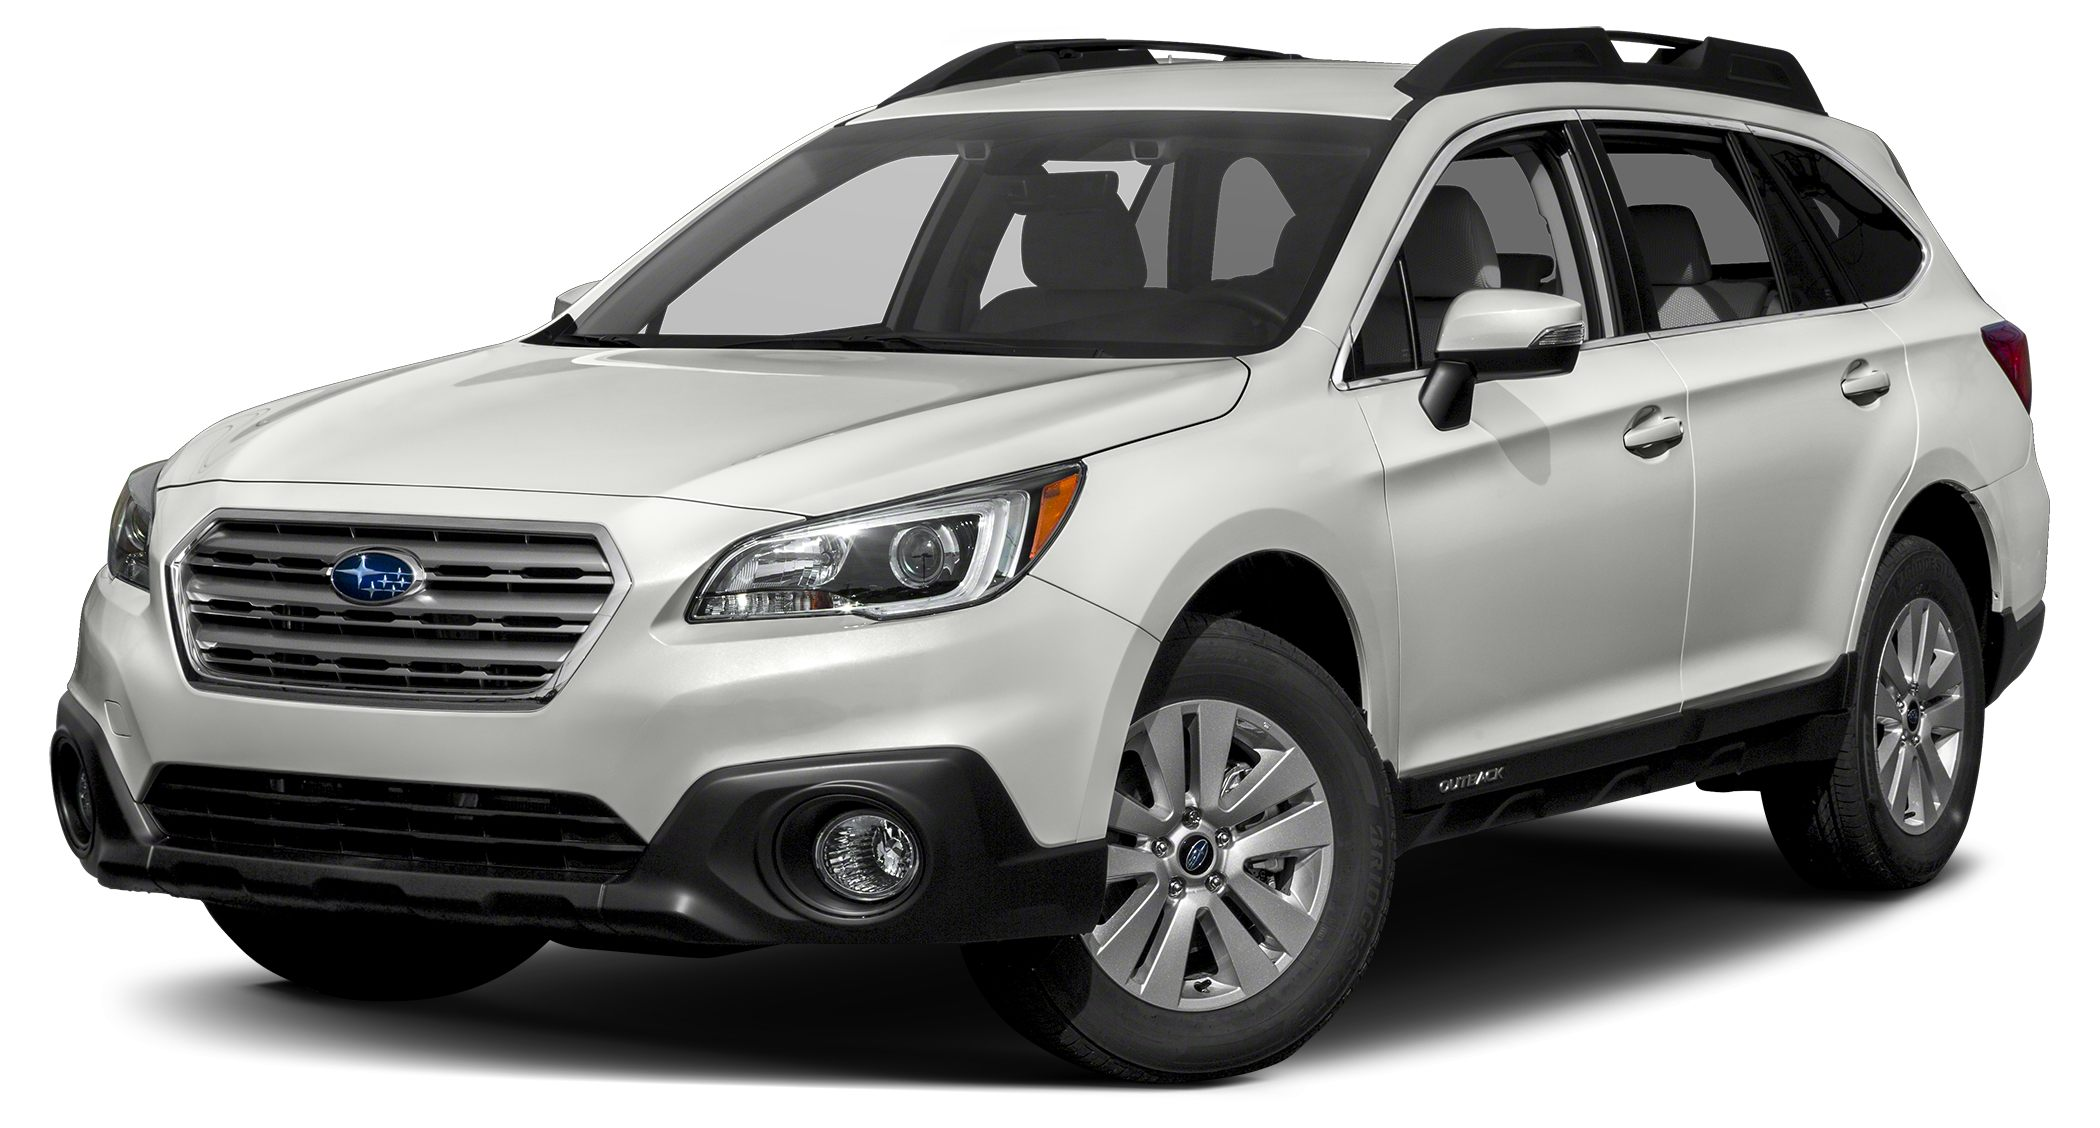 2017 Subaru Outback 25i Premium AWD Come to the experts Dont waste your chance at purchasing t